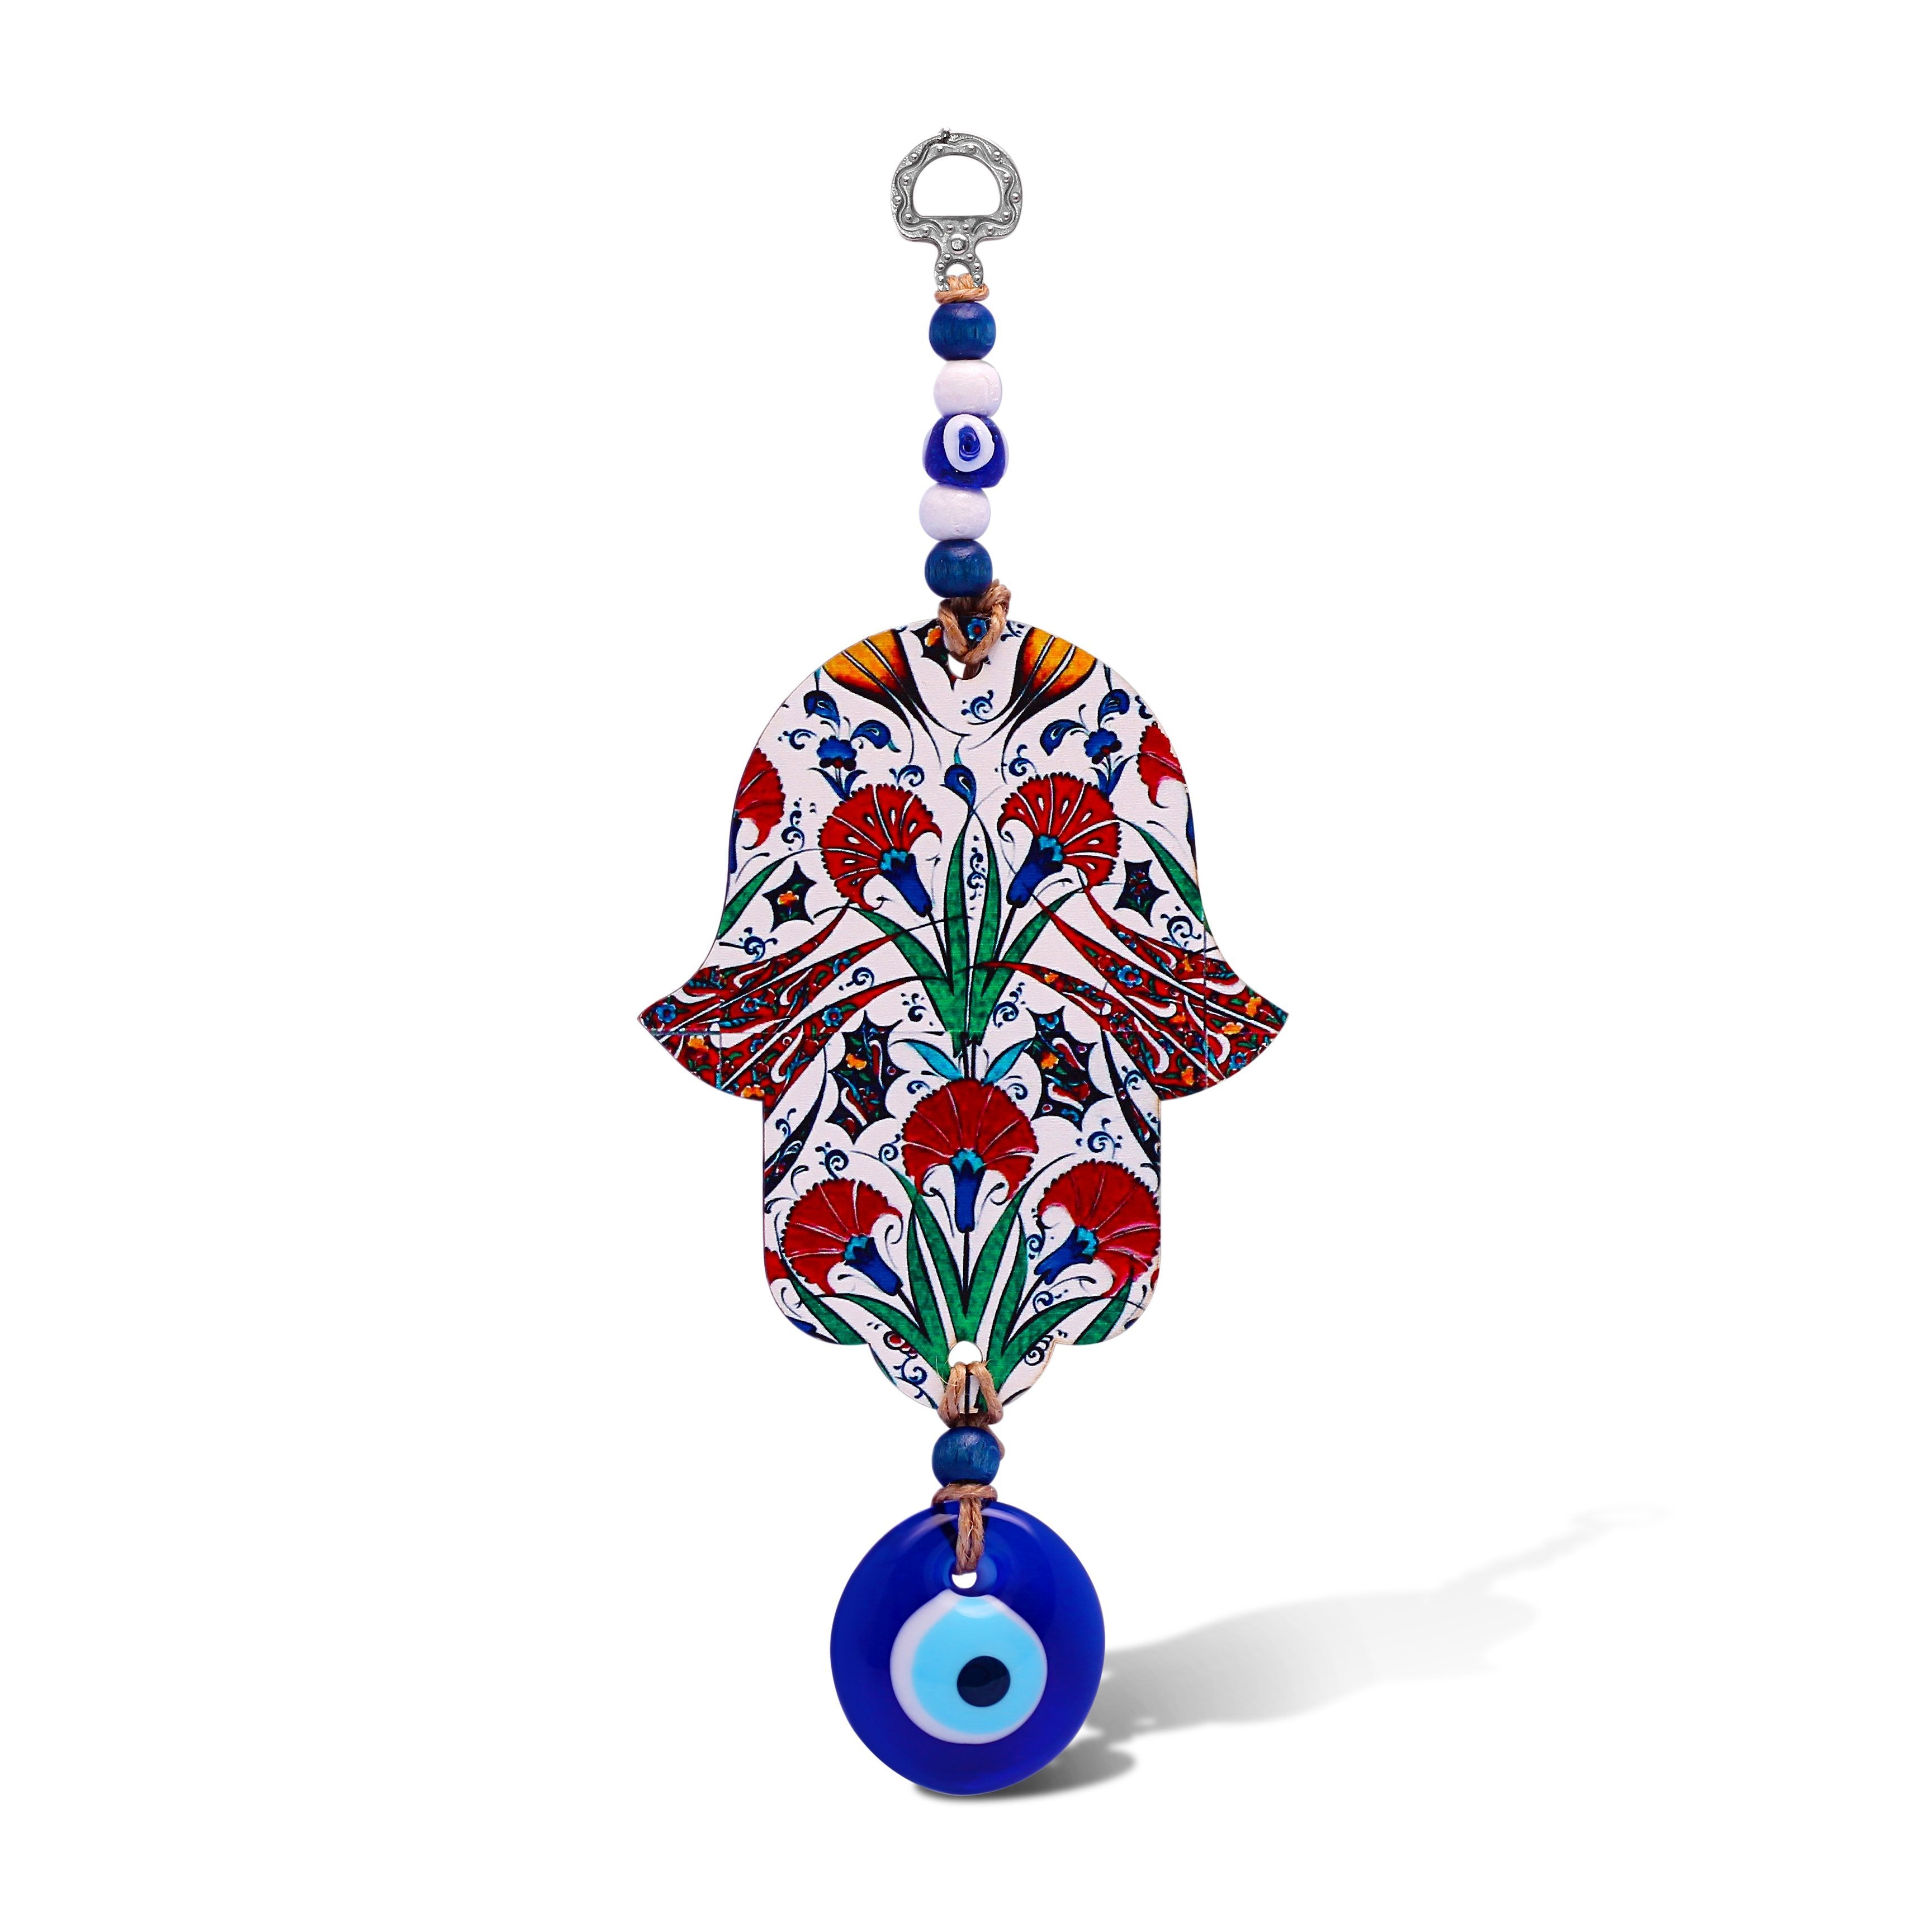 Floral Hamsa Wall Hanging for Your Home